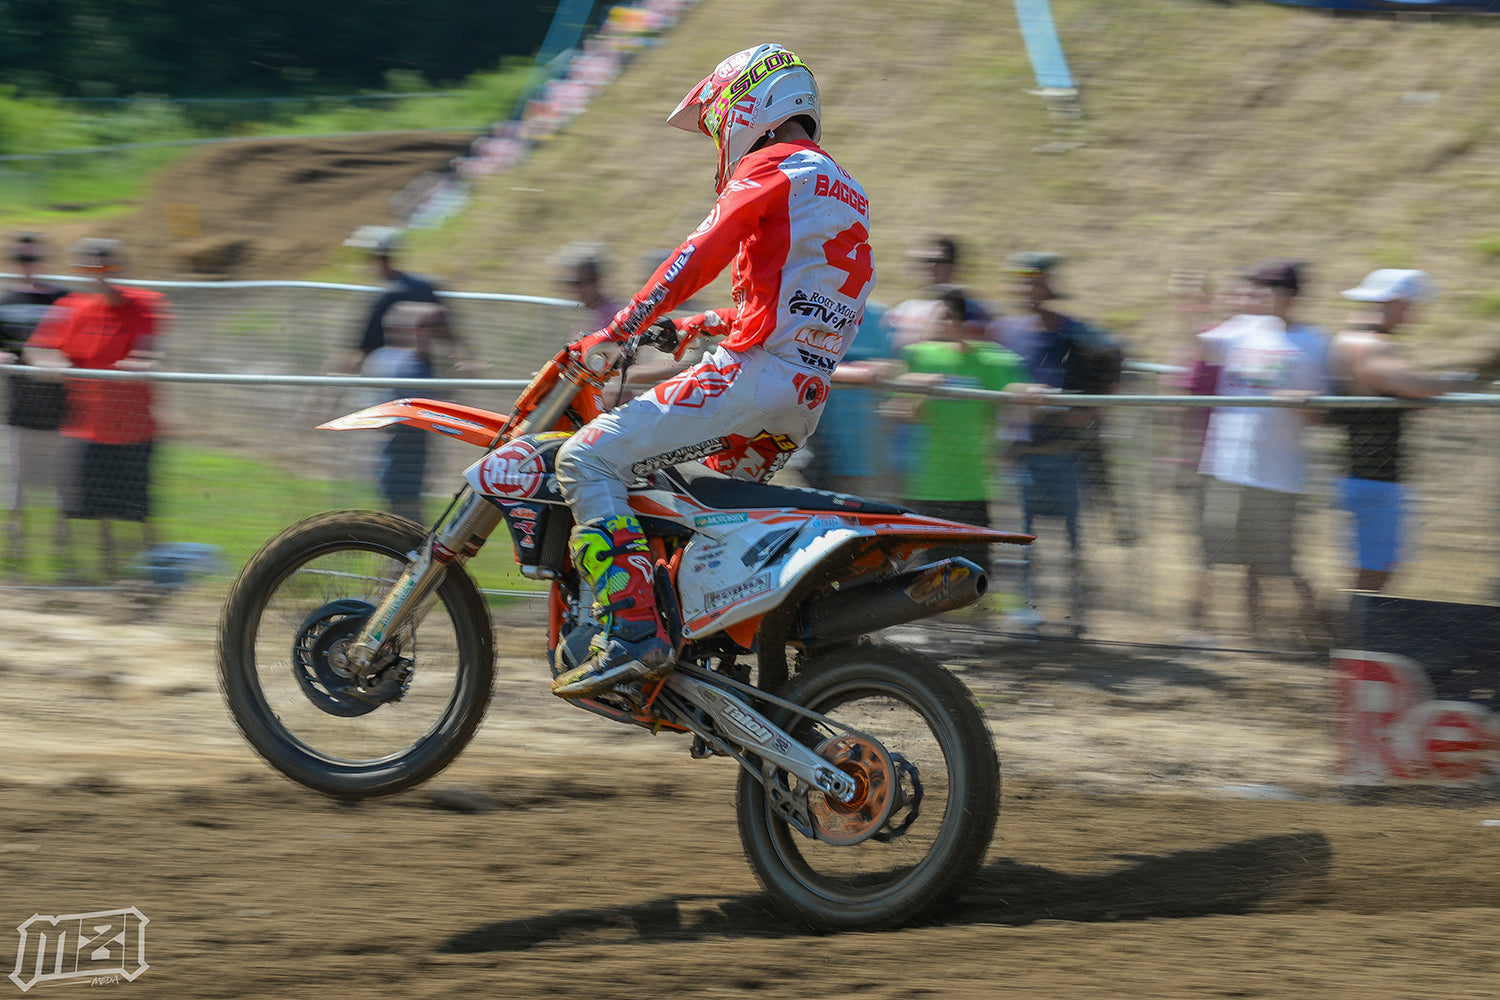 Blake Baggett at Budds Creek